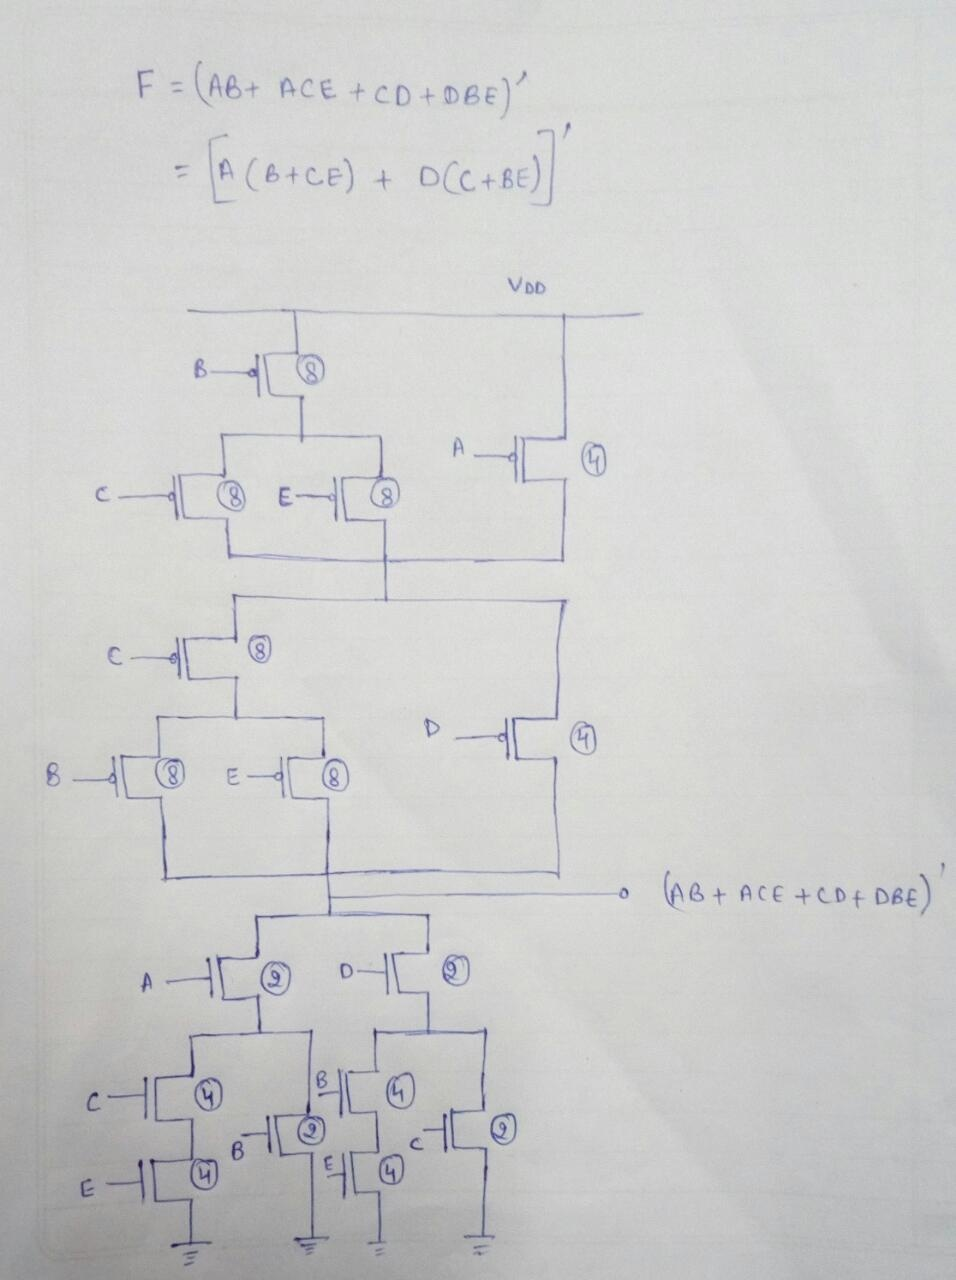 hight resolution of for 16 transistor following circuit can be considered